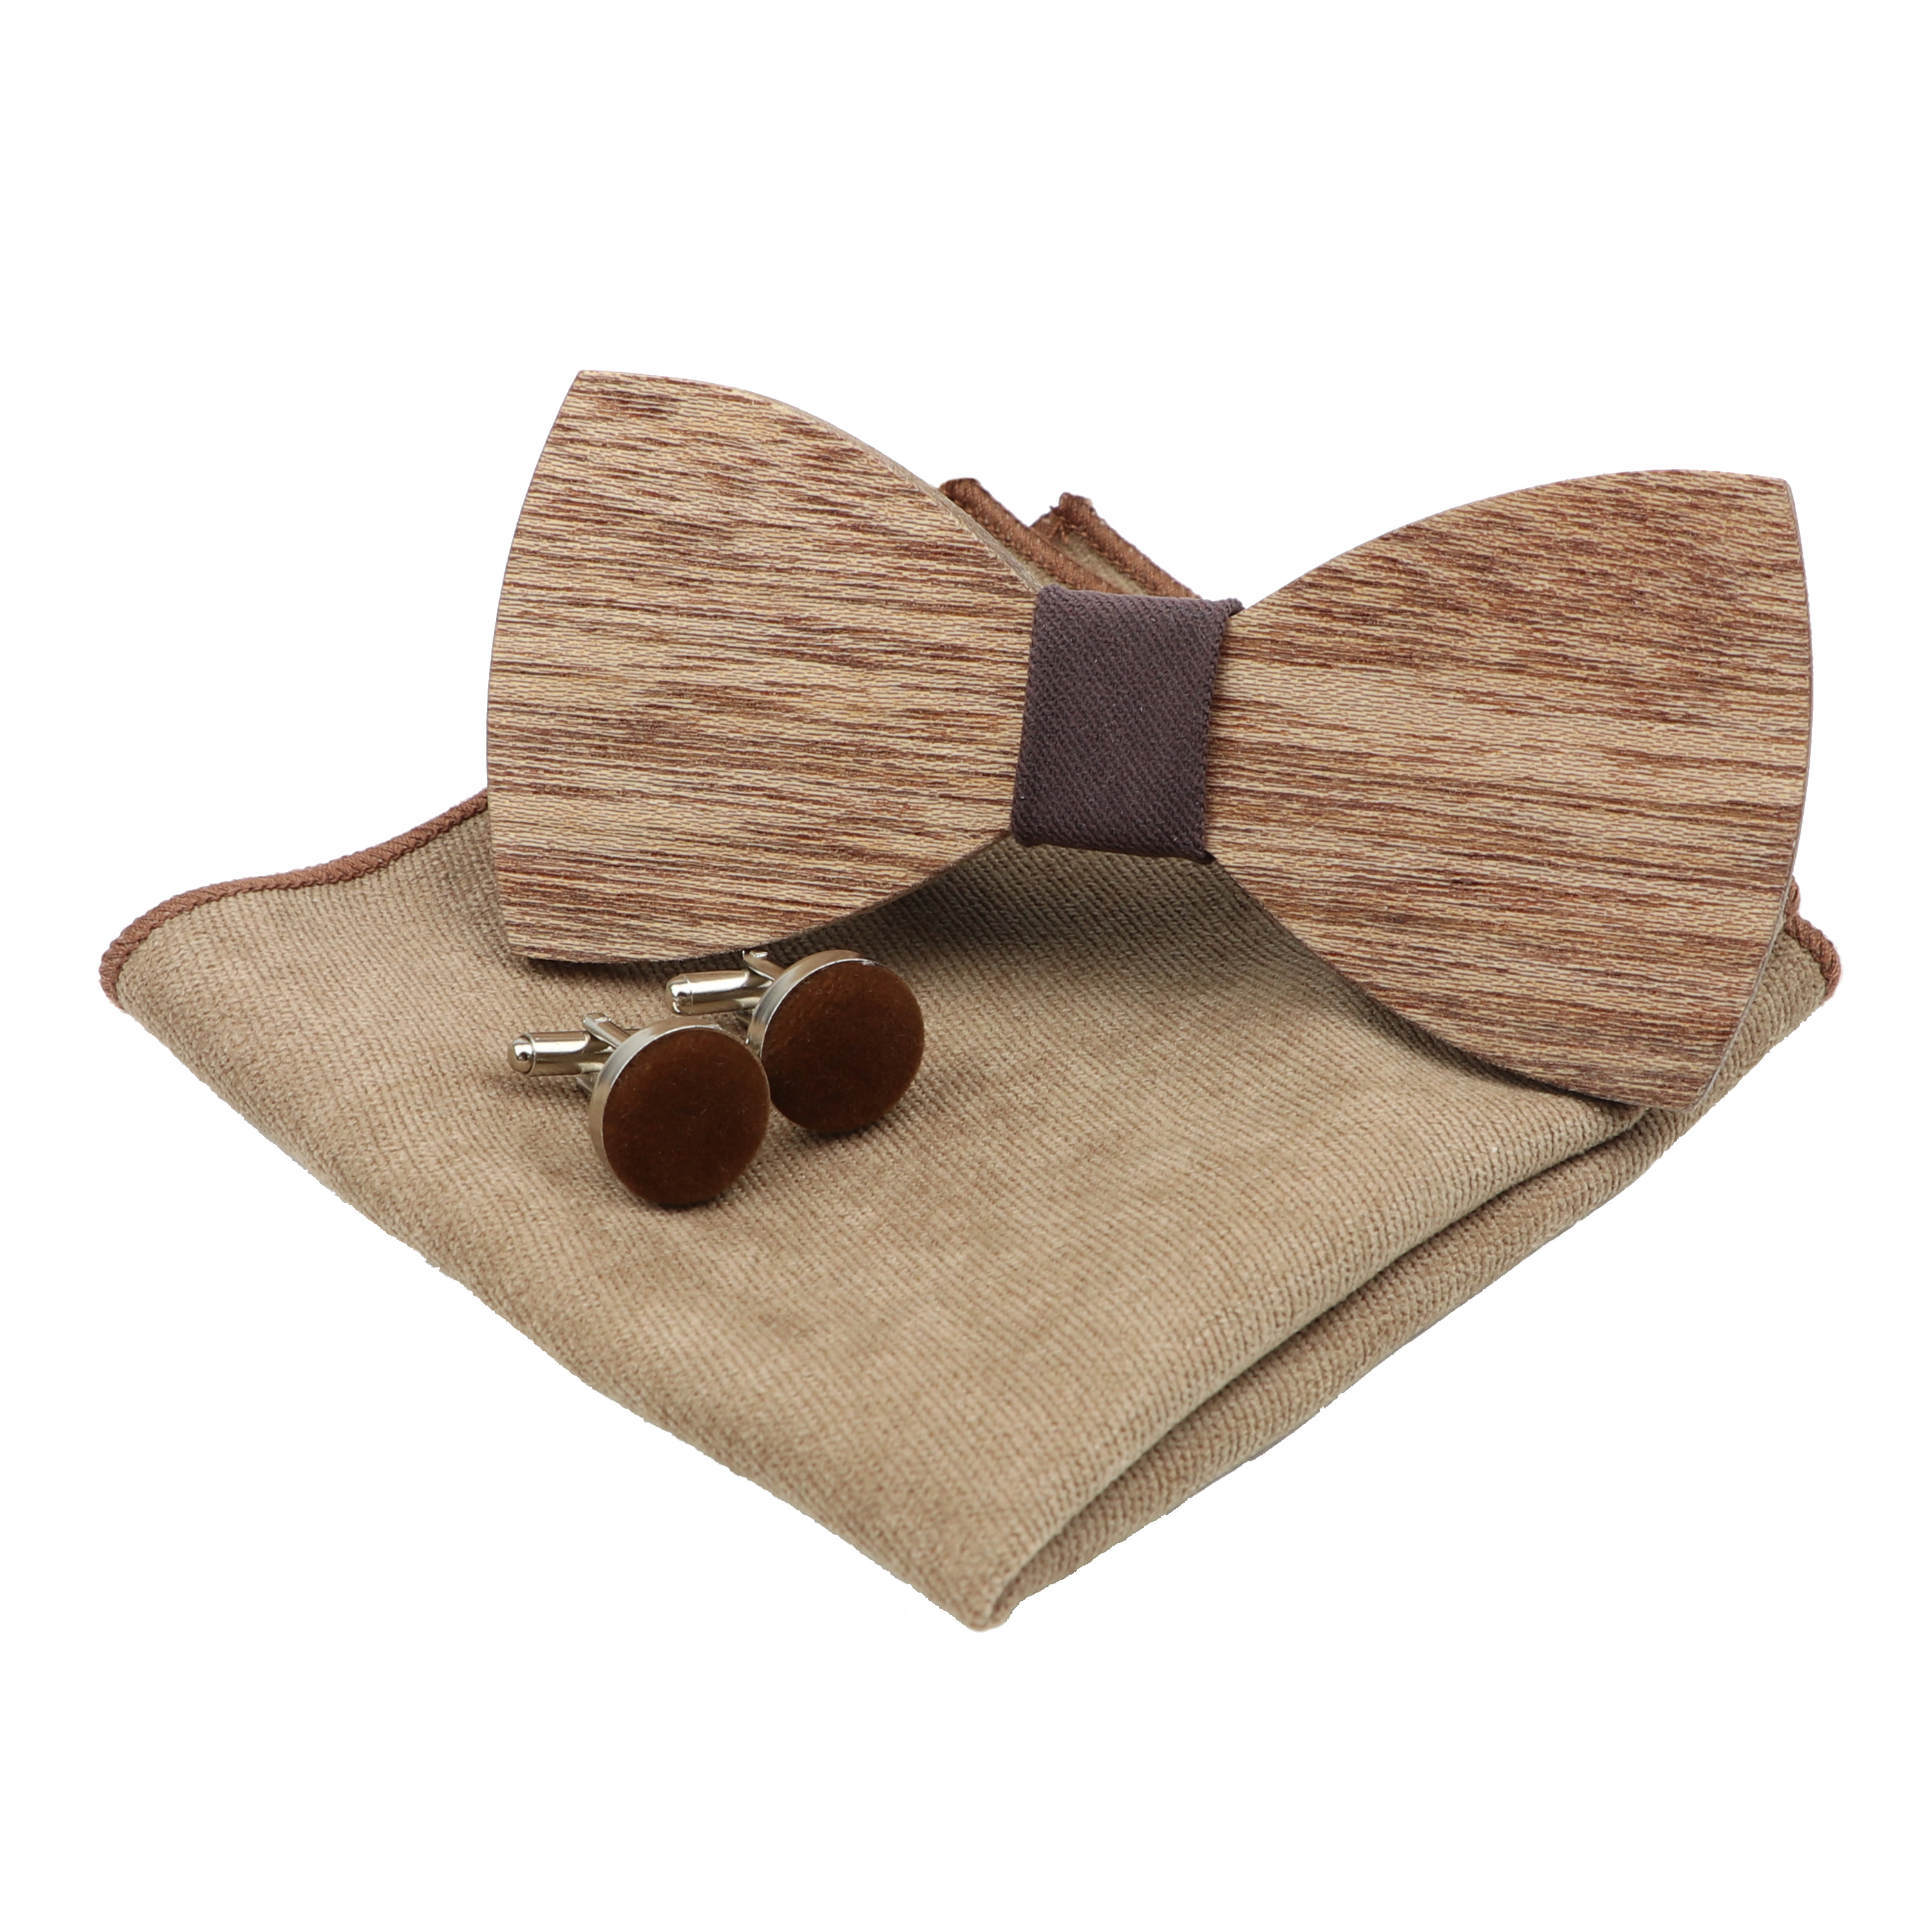 Handmade 100% Wooden Bow Tie Set Soft Microsuede Pocket Square Cufflinks For Men Wedding Party Bowtie Butterfly Hanky 3 Pcs Lots